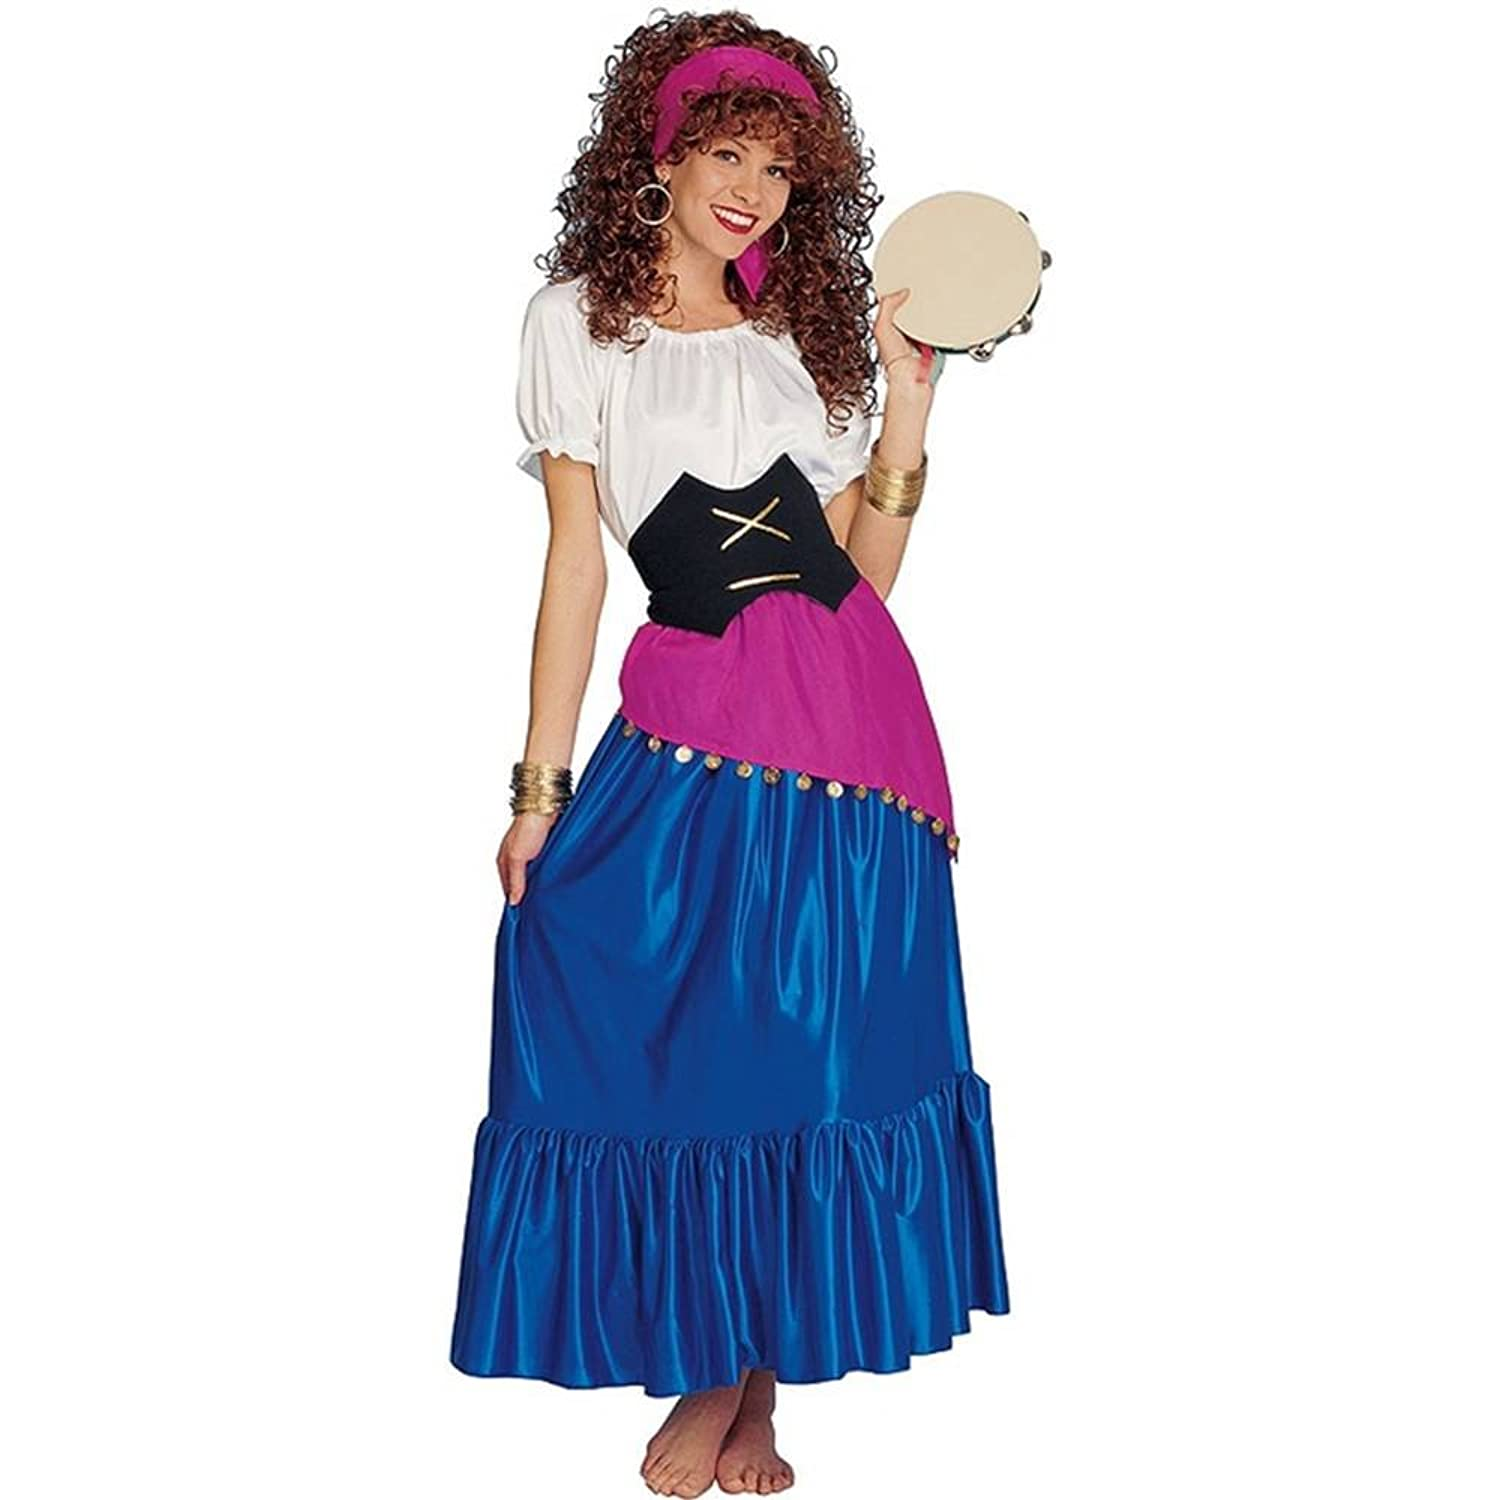 sc 1 st  Amazon.com & Amazon.com: Gypsy Adult Costume: Clothing